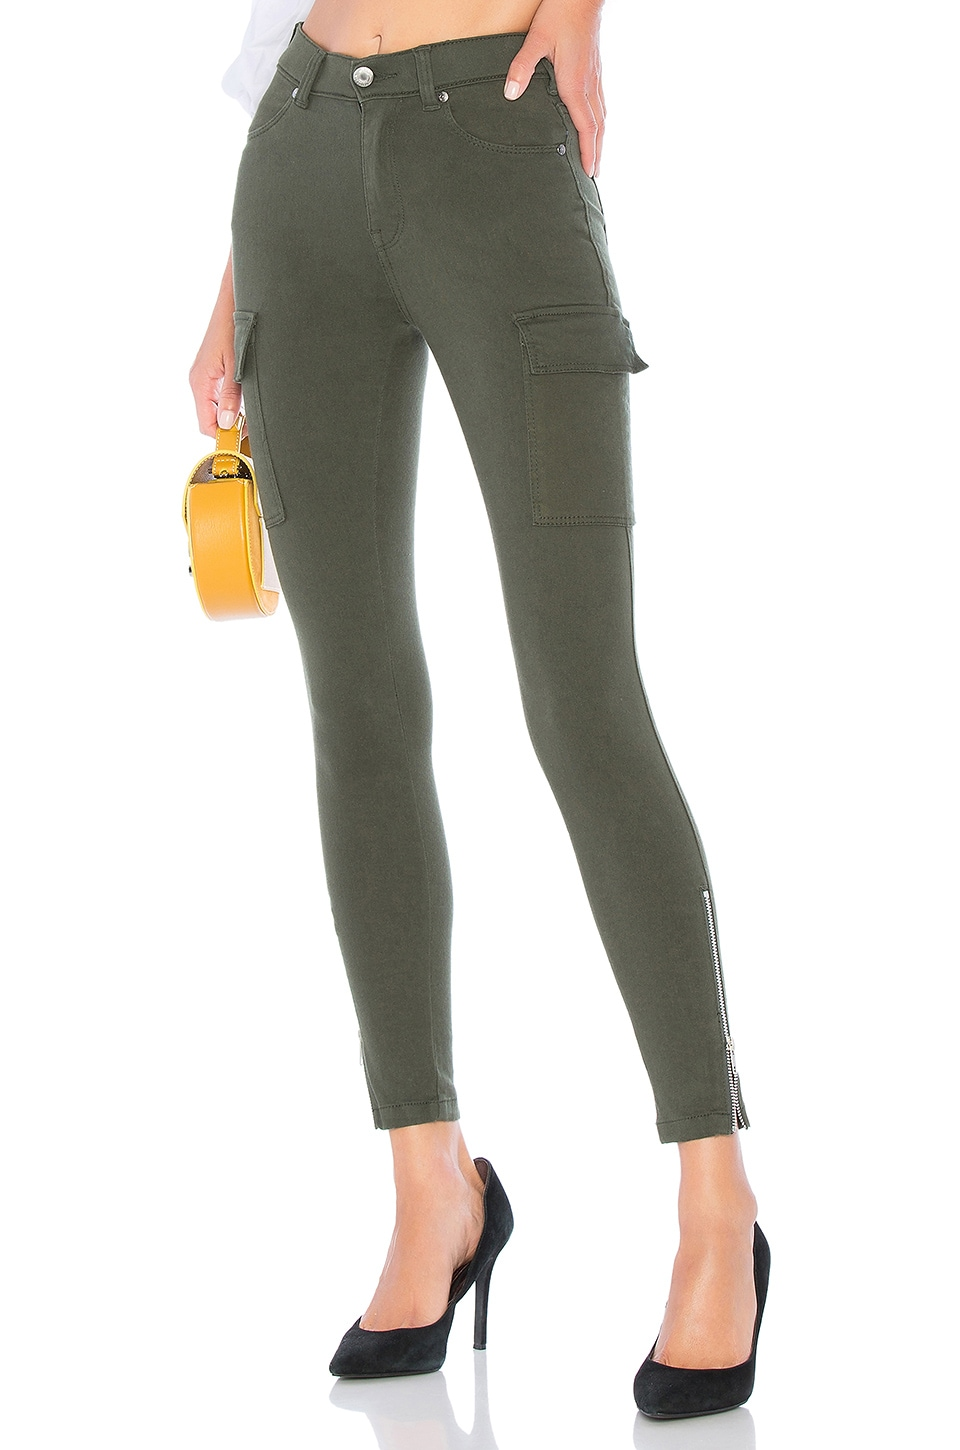 Dr. Denim Dezie Pant in Riot Green